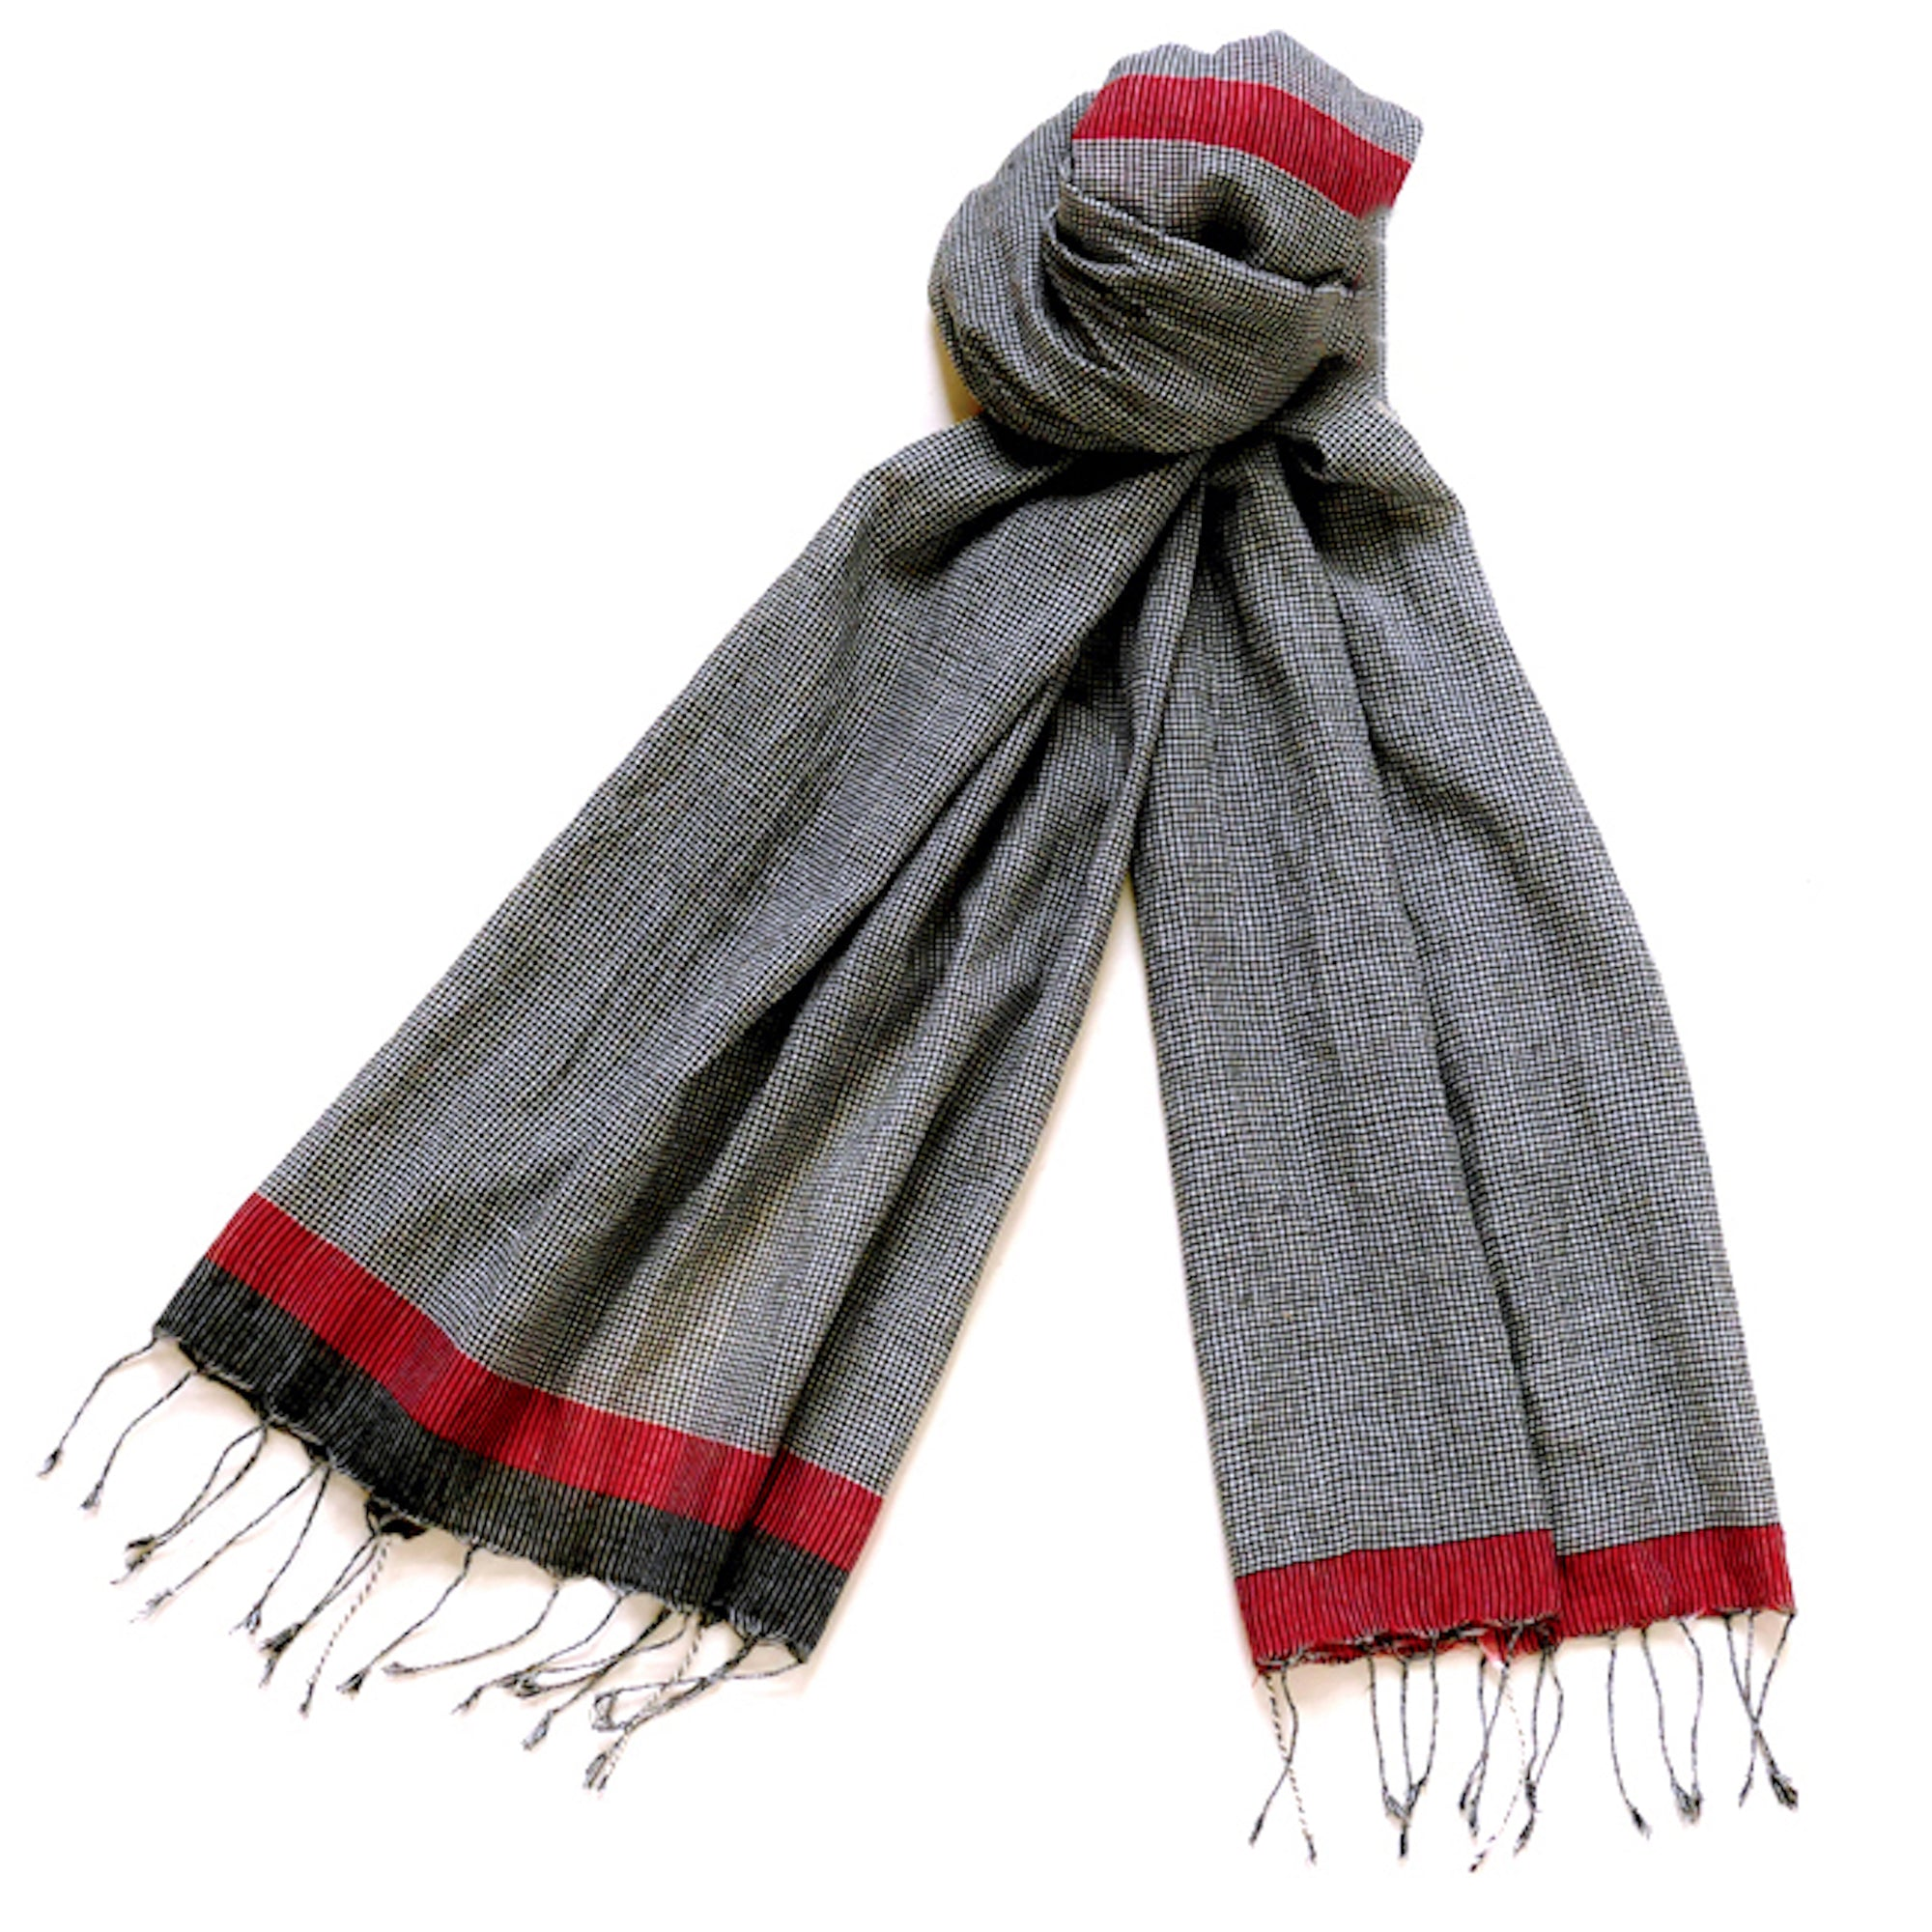 Licorice All Sort scarf